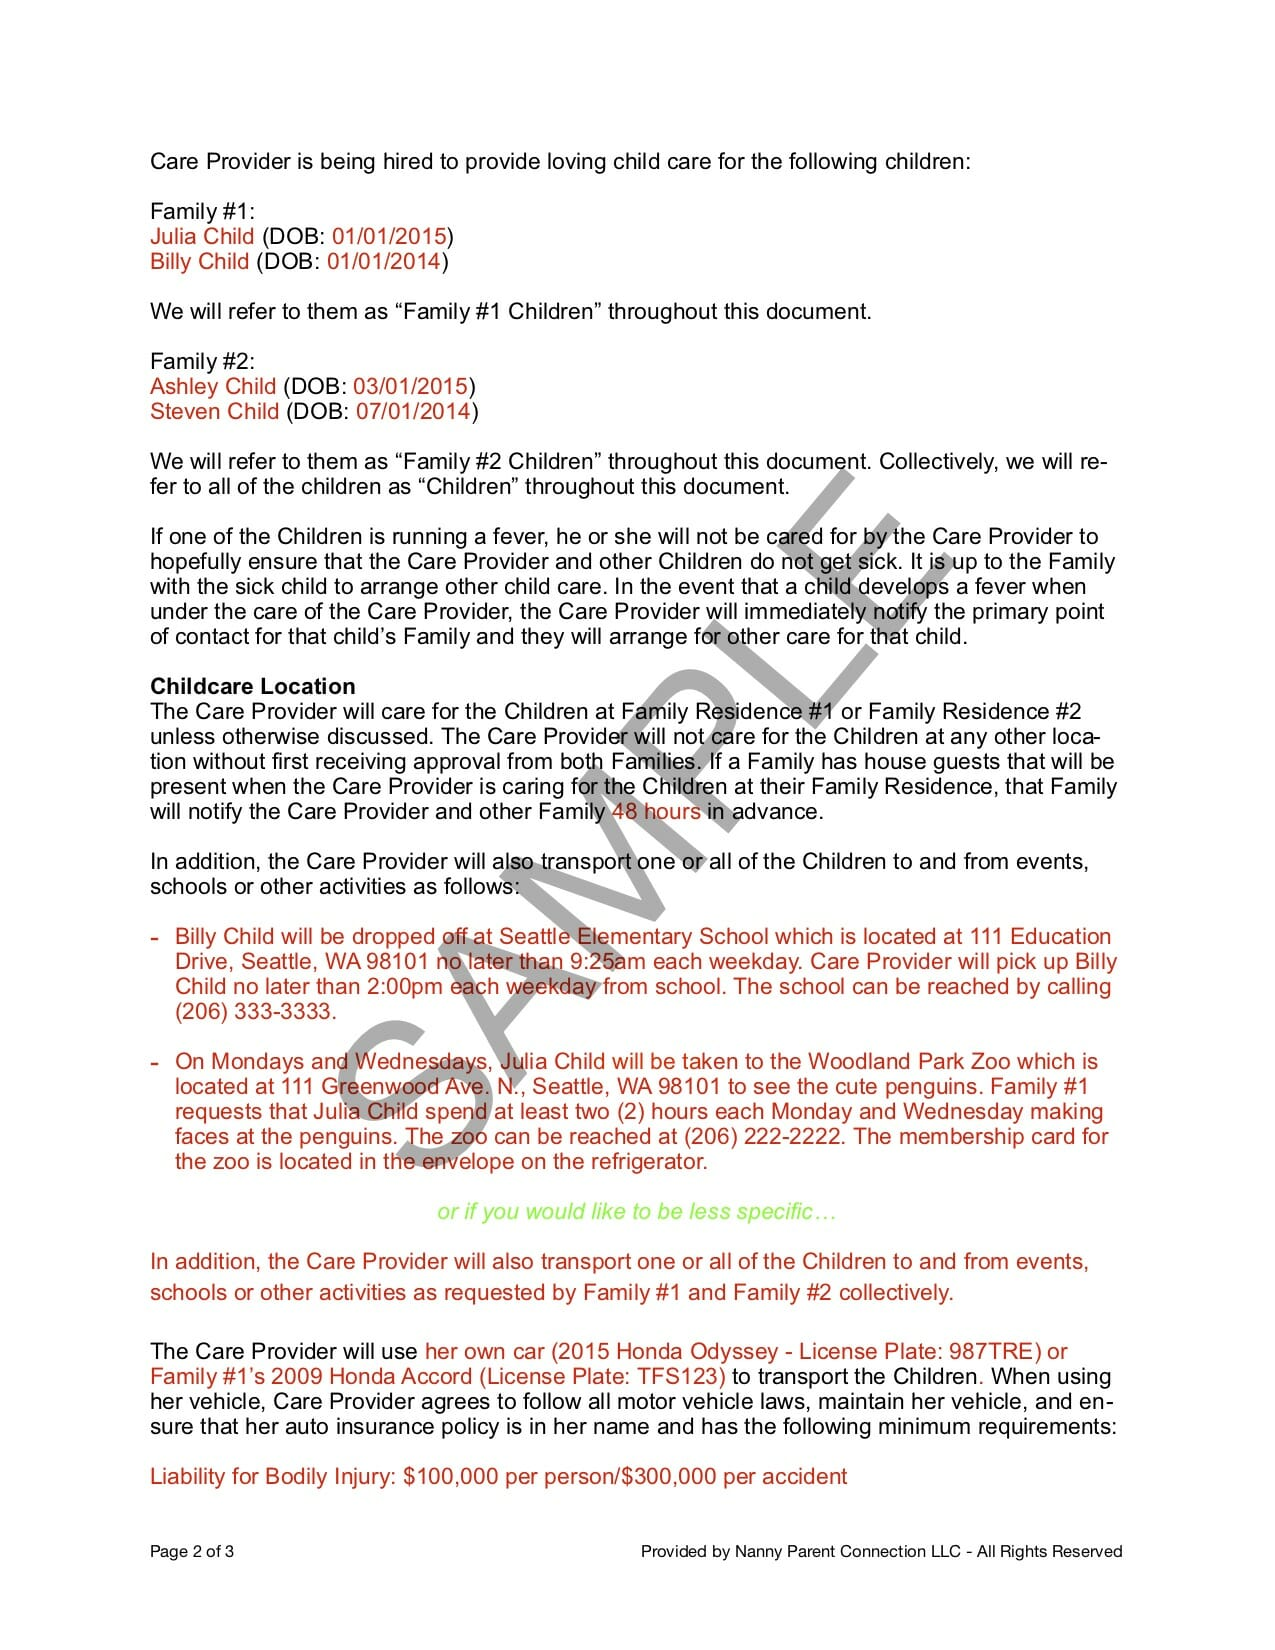 29 printable nanny client sample contract forms and templates.